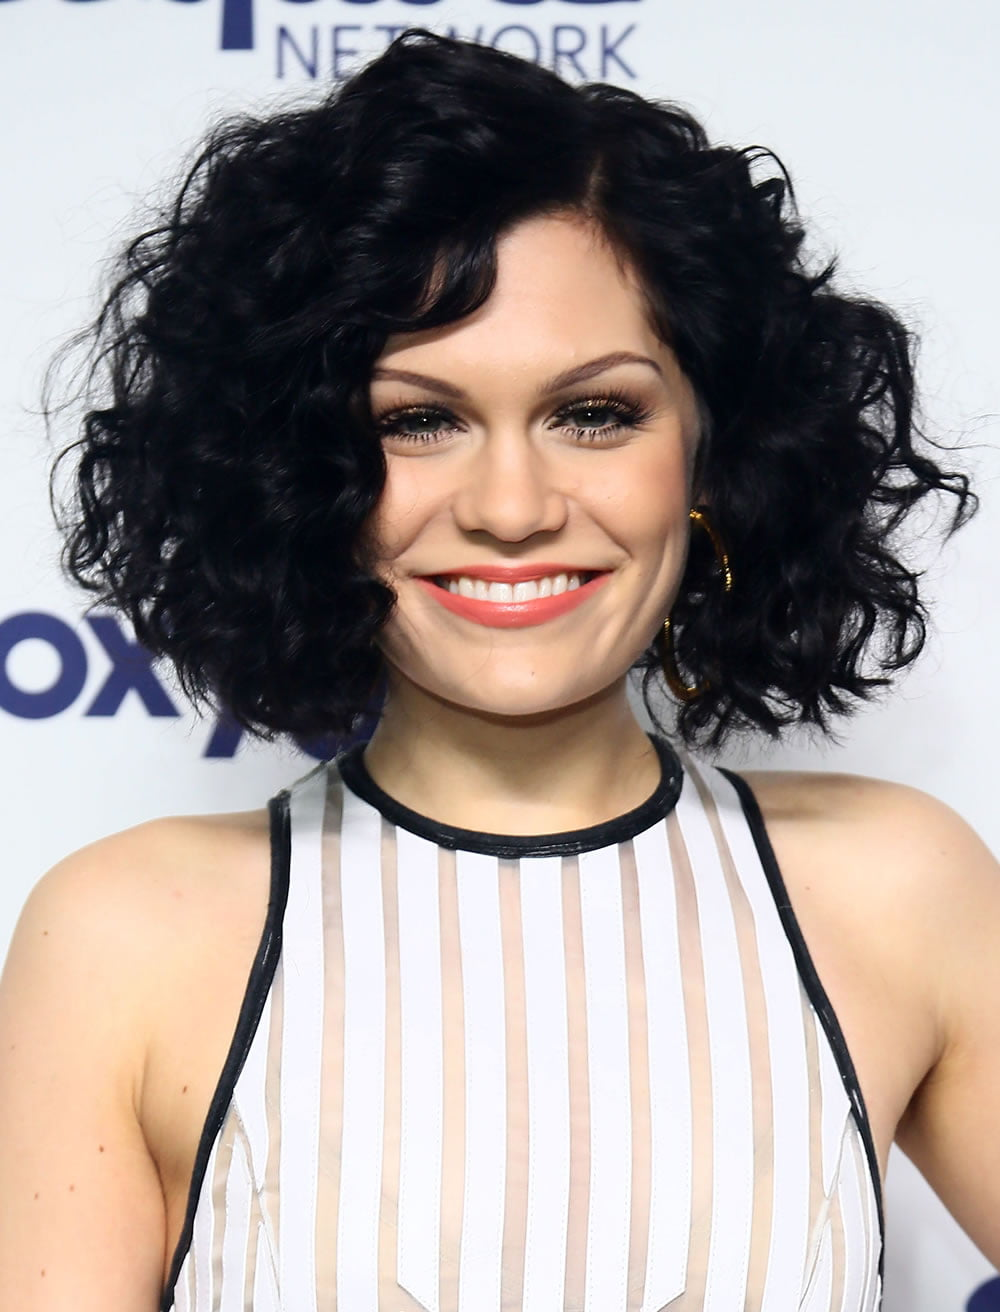 2018 Curly Bob Hairstyles For Women 17 Perfect Short Hair Inspiration Page 3 Hairstyles